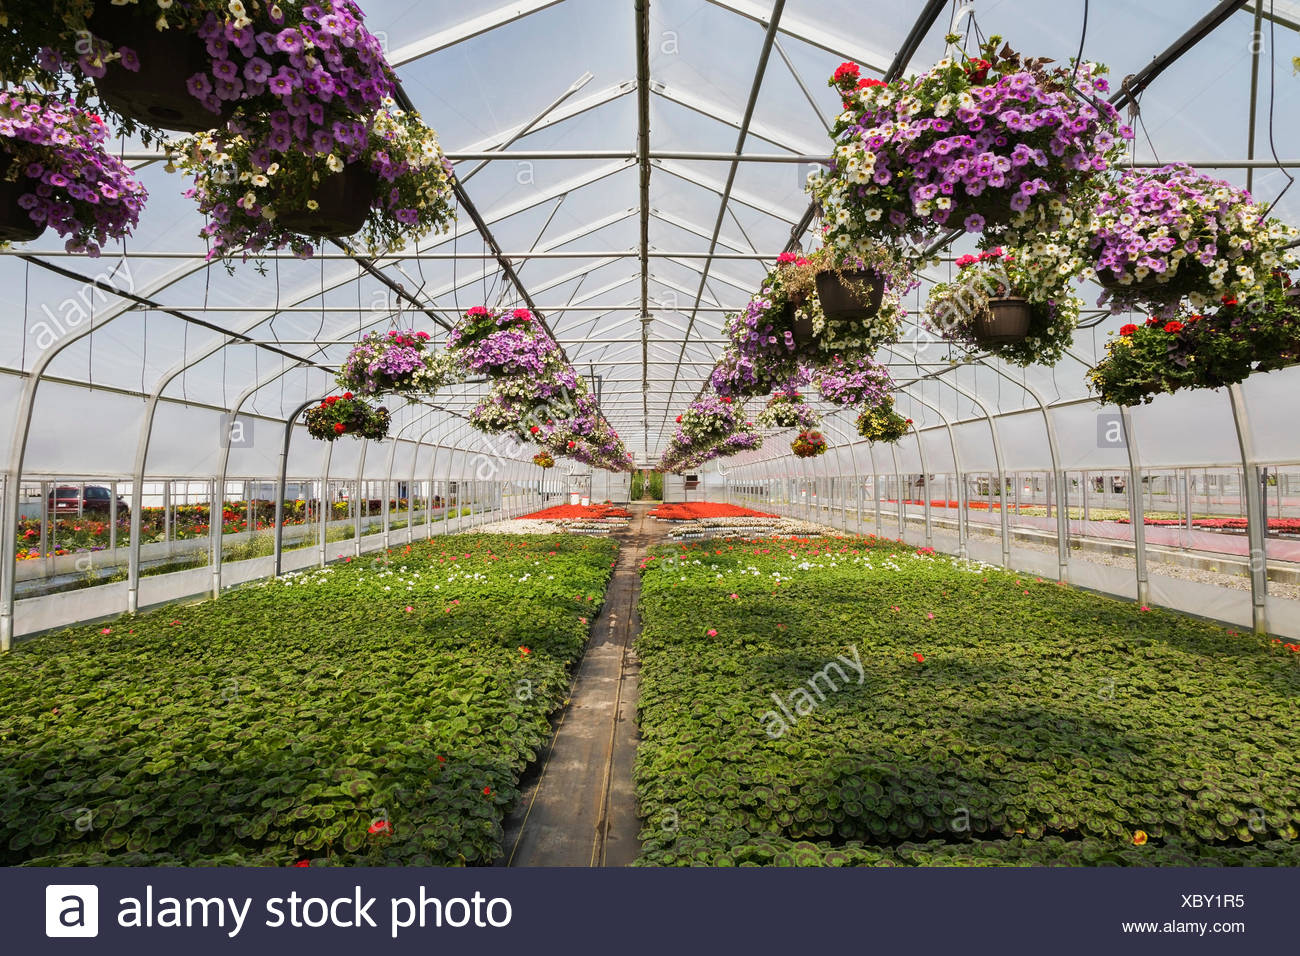 Commercial Greenhouse With Mixed Flowering Plants Petunias In